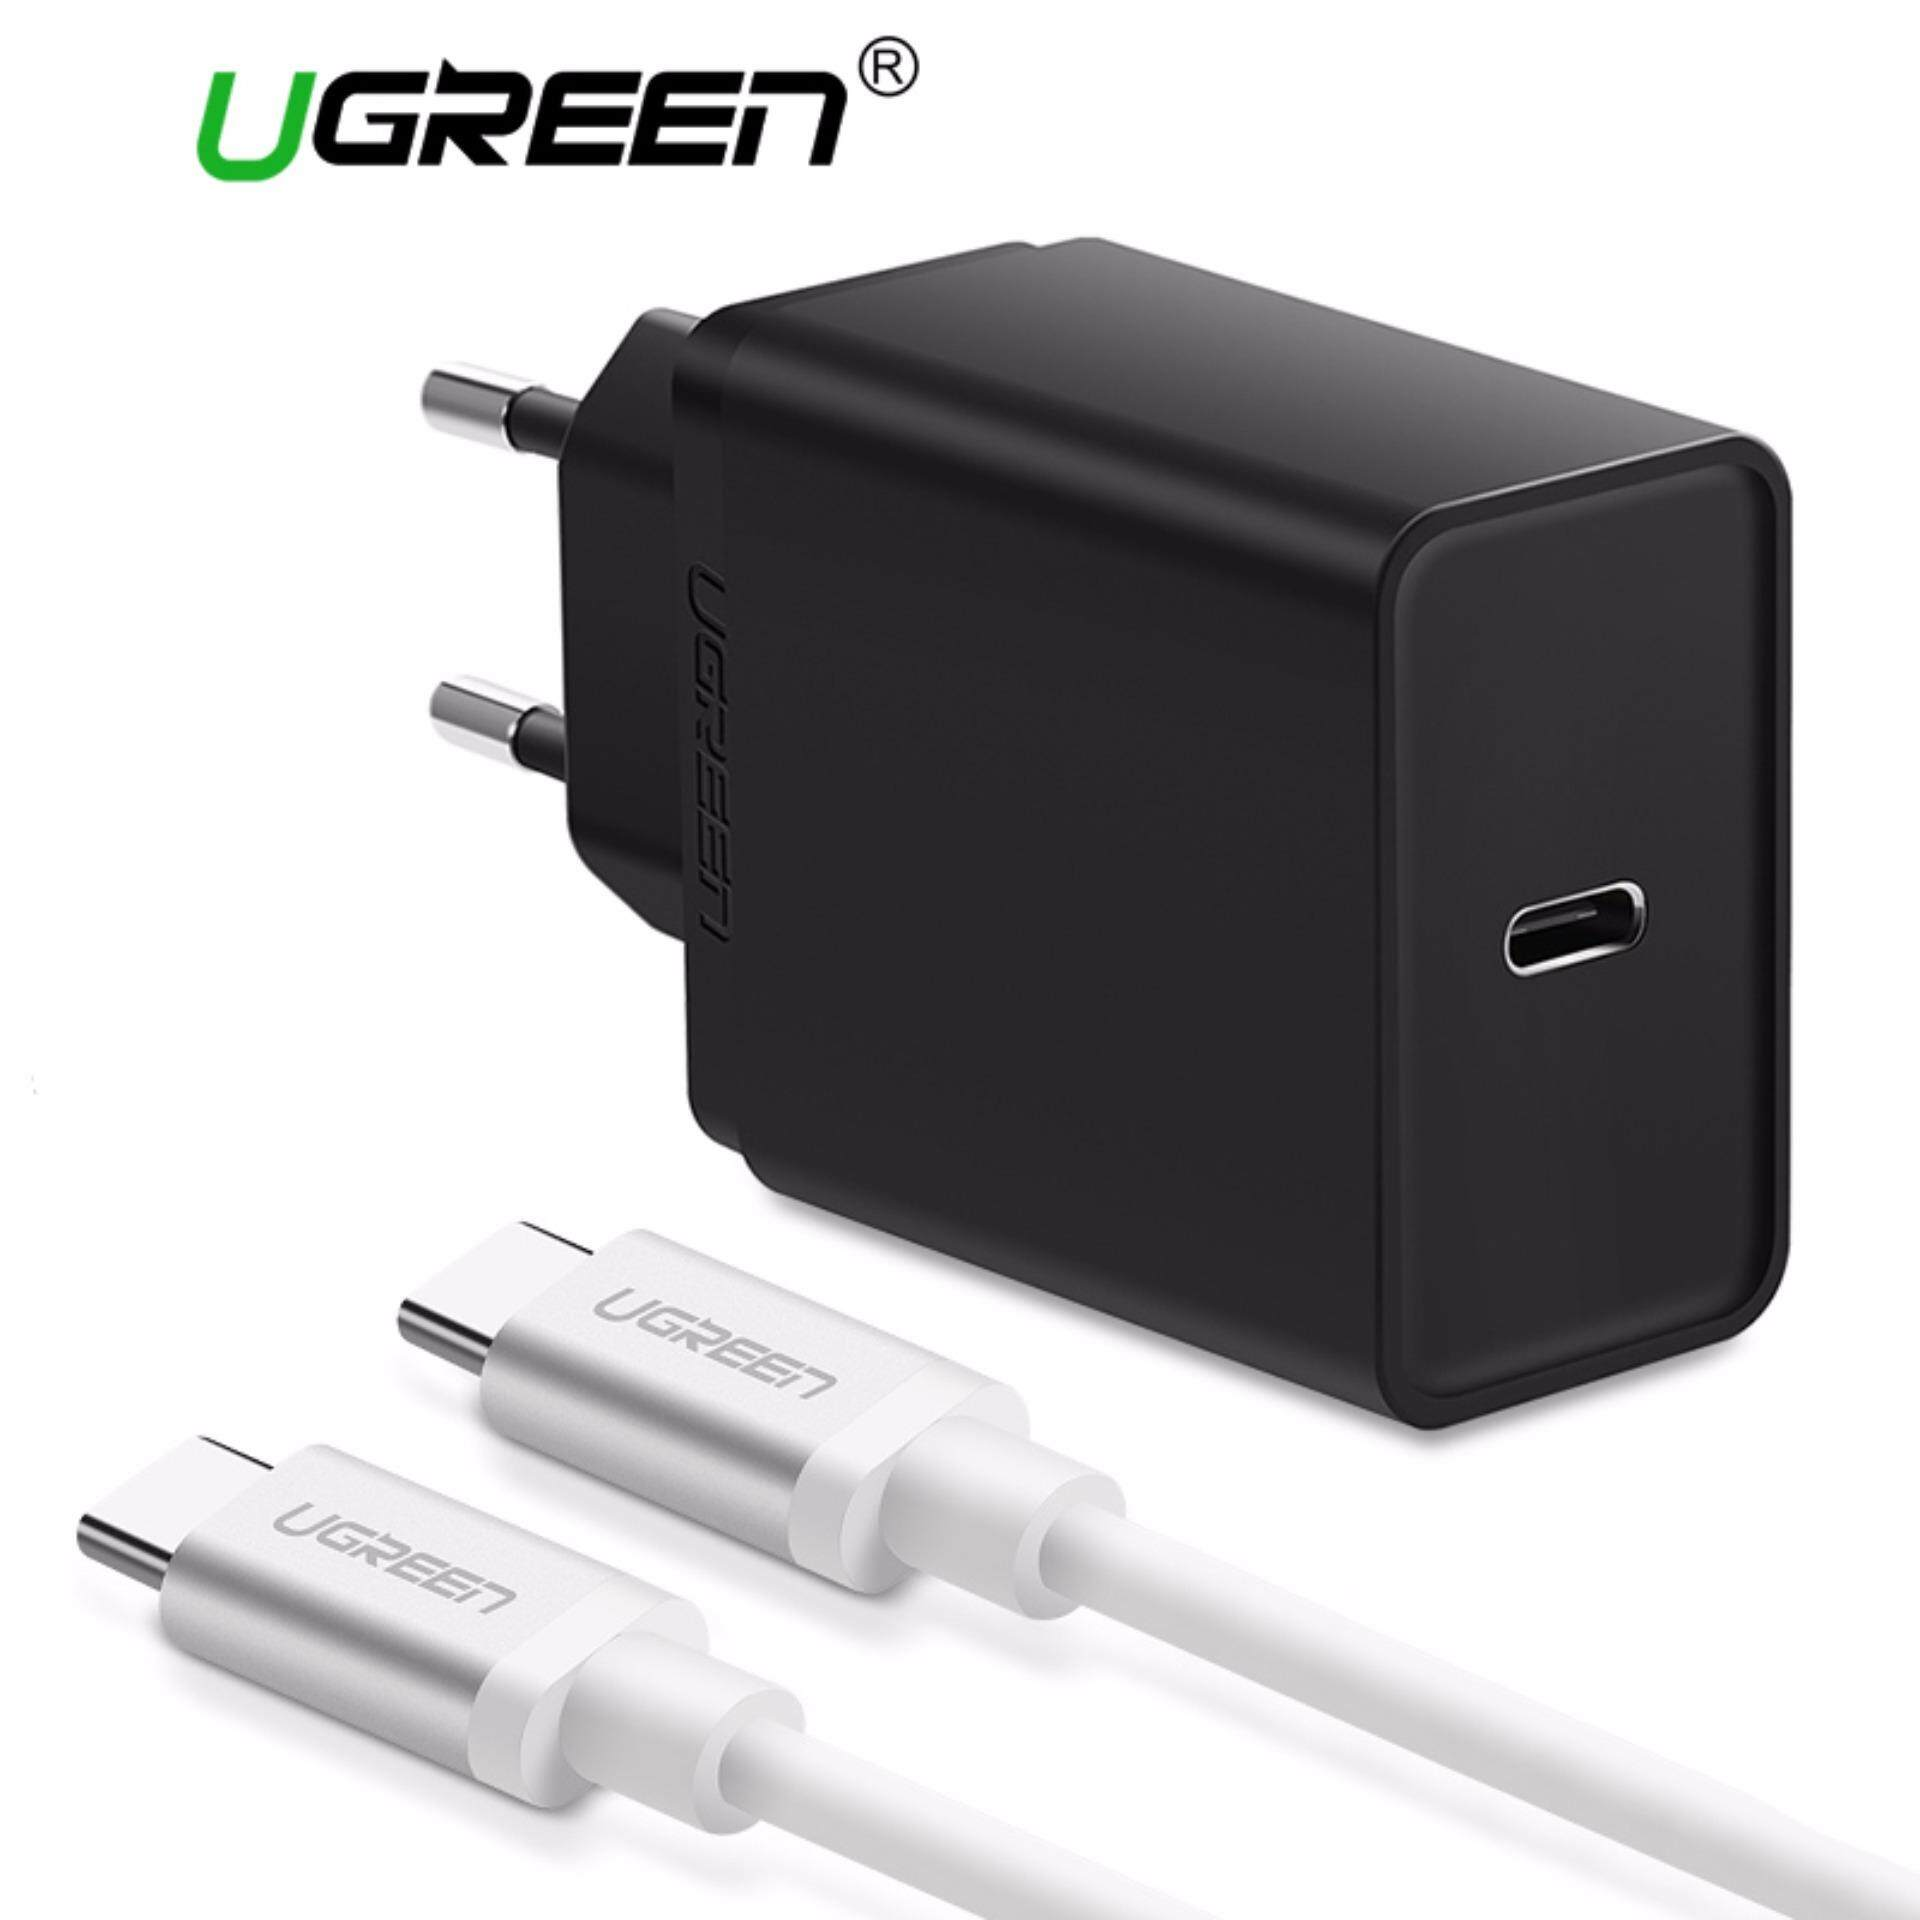 Who Sells The Cheapest Ugreen Usb Type C 30W Wall Charger With Power Delivery For Iphone 7 8 X 8 Plus Samsung Galaxy S8 S8 Plus Macbook Nintendo Switch Lumia 950 Xl Google Pixel 2 Xl Oneplus 2 Go Pro Hero 5 1 Meter Usb C To Usb C Cable Eu Plug Intl Online